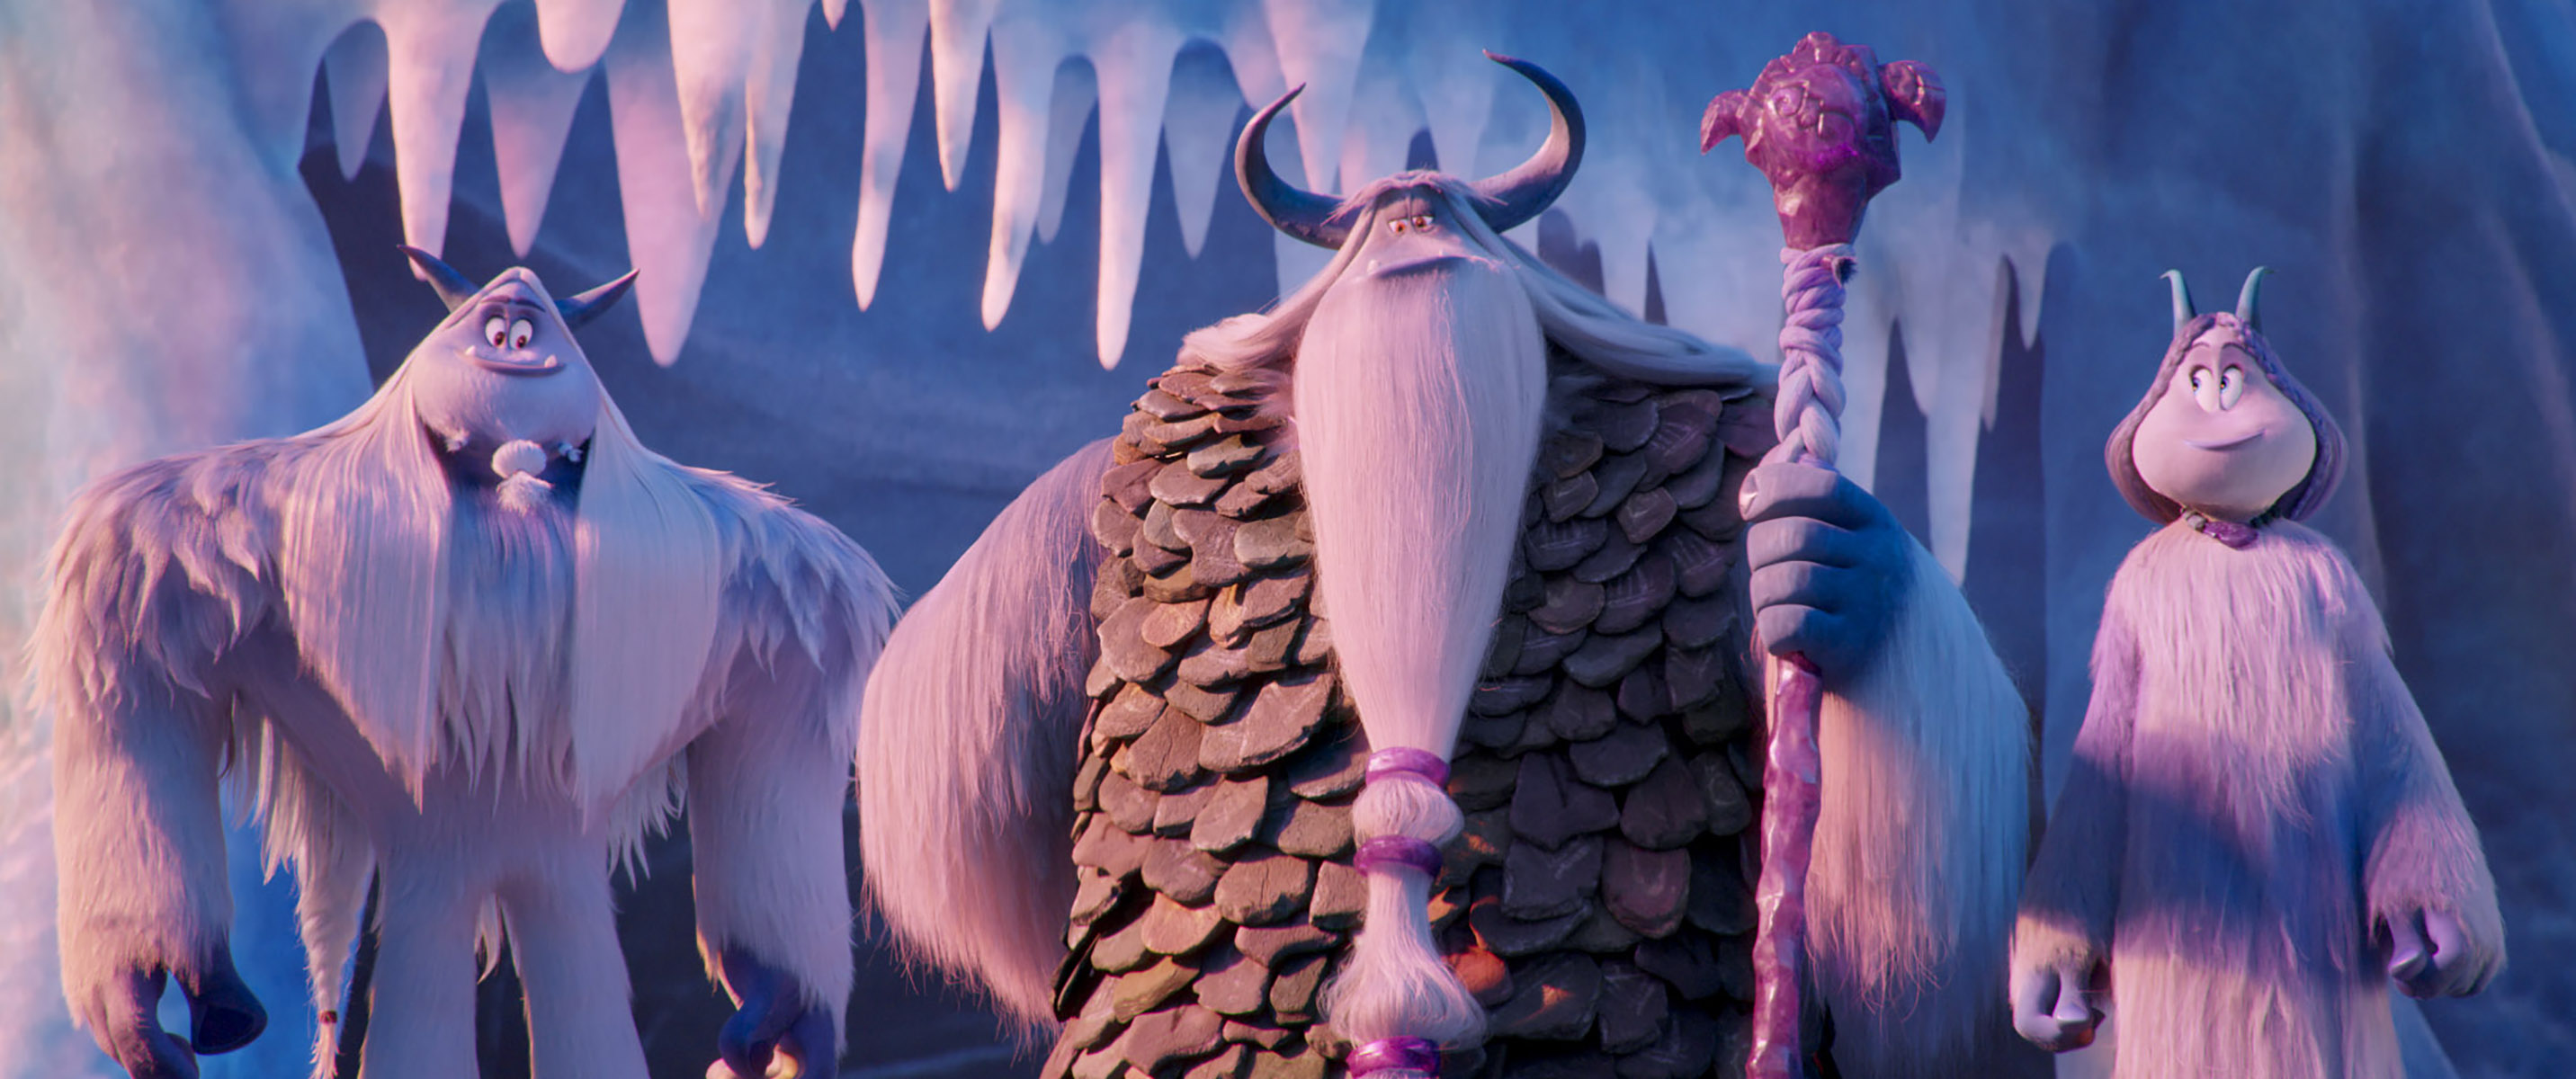 smallfoot still